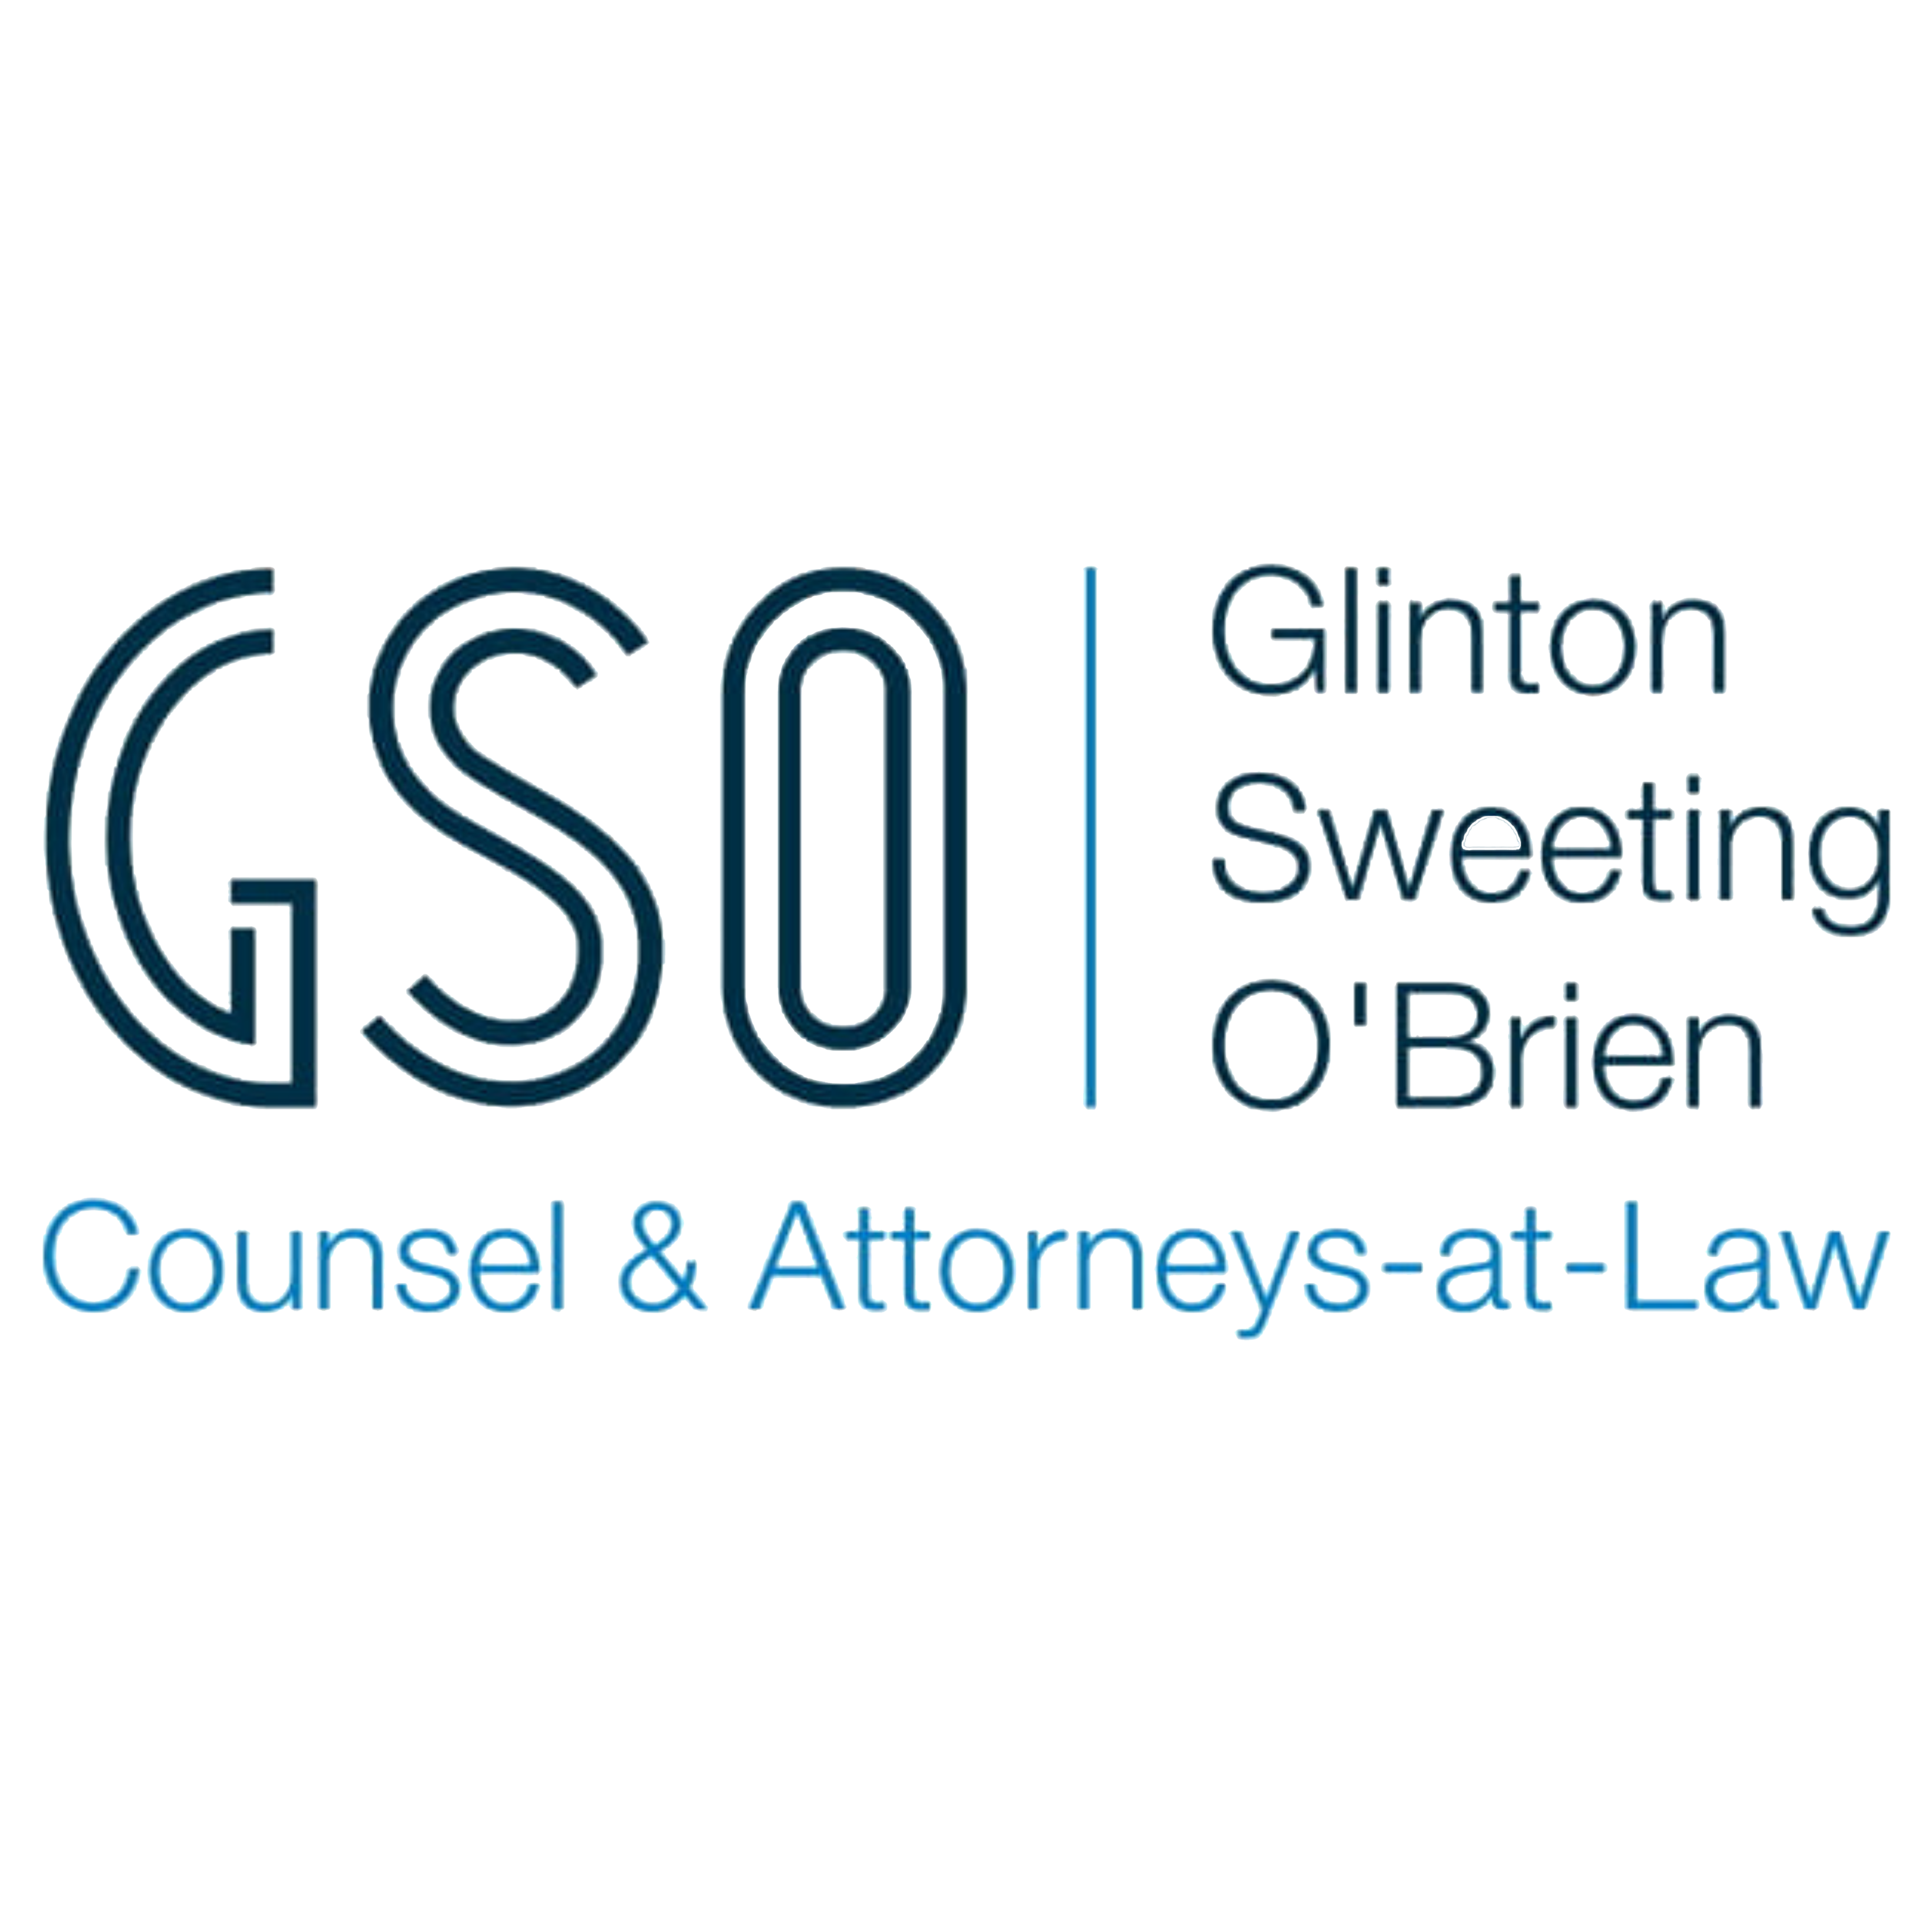 Glinton Sweeting O'Brien Counsel & Attorneys-At-Law